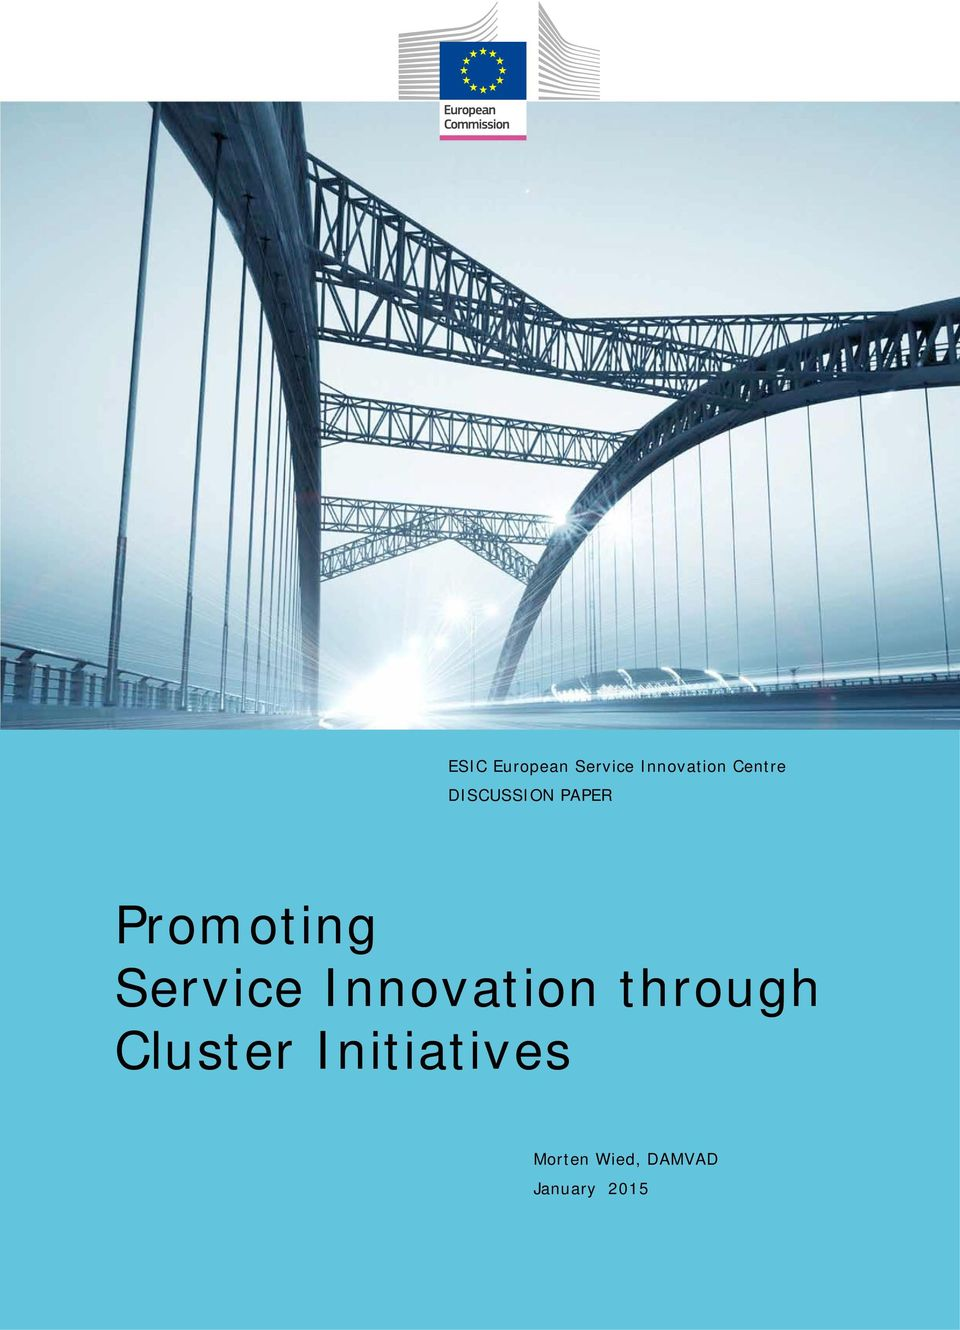 Service Innovation through Cluster